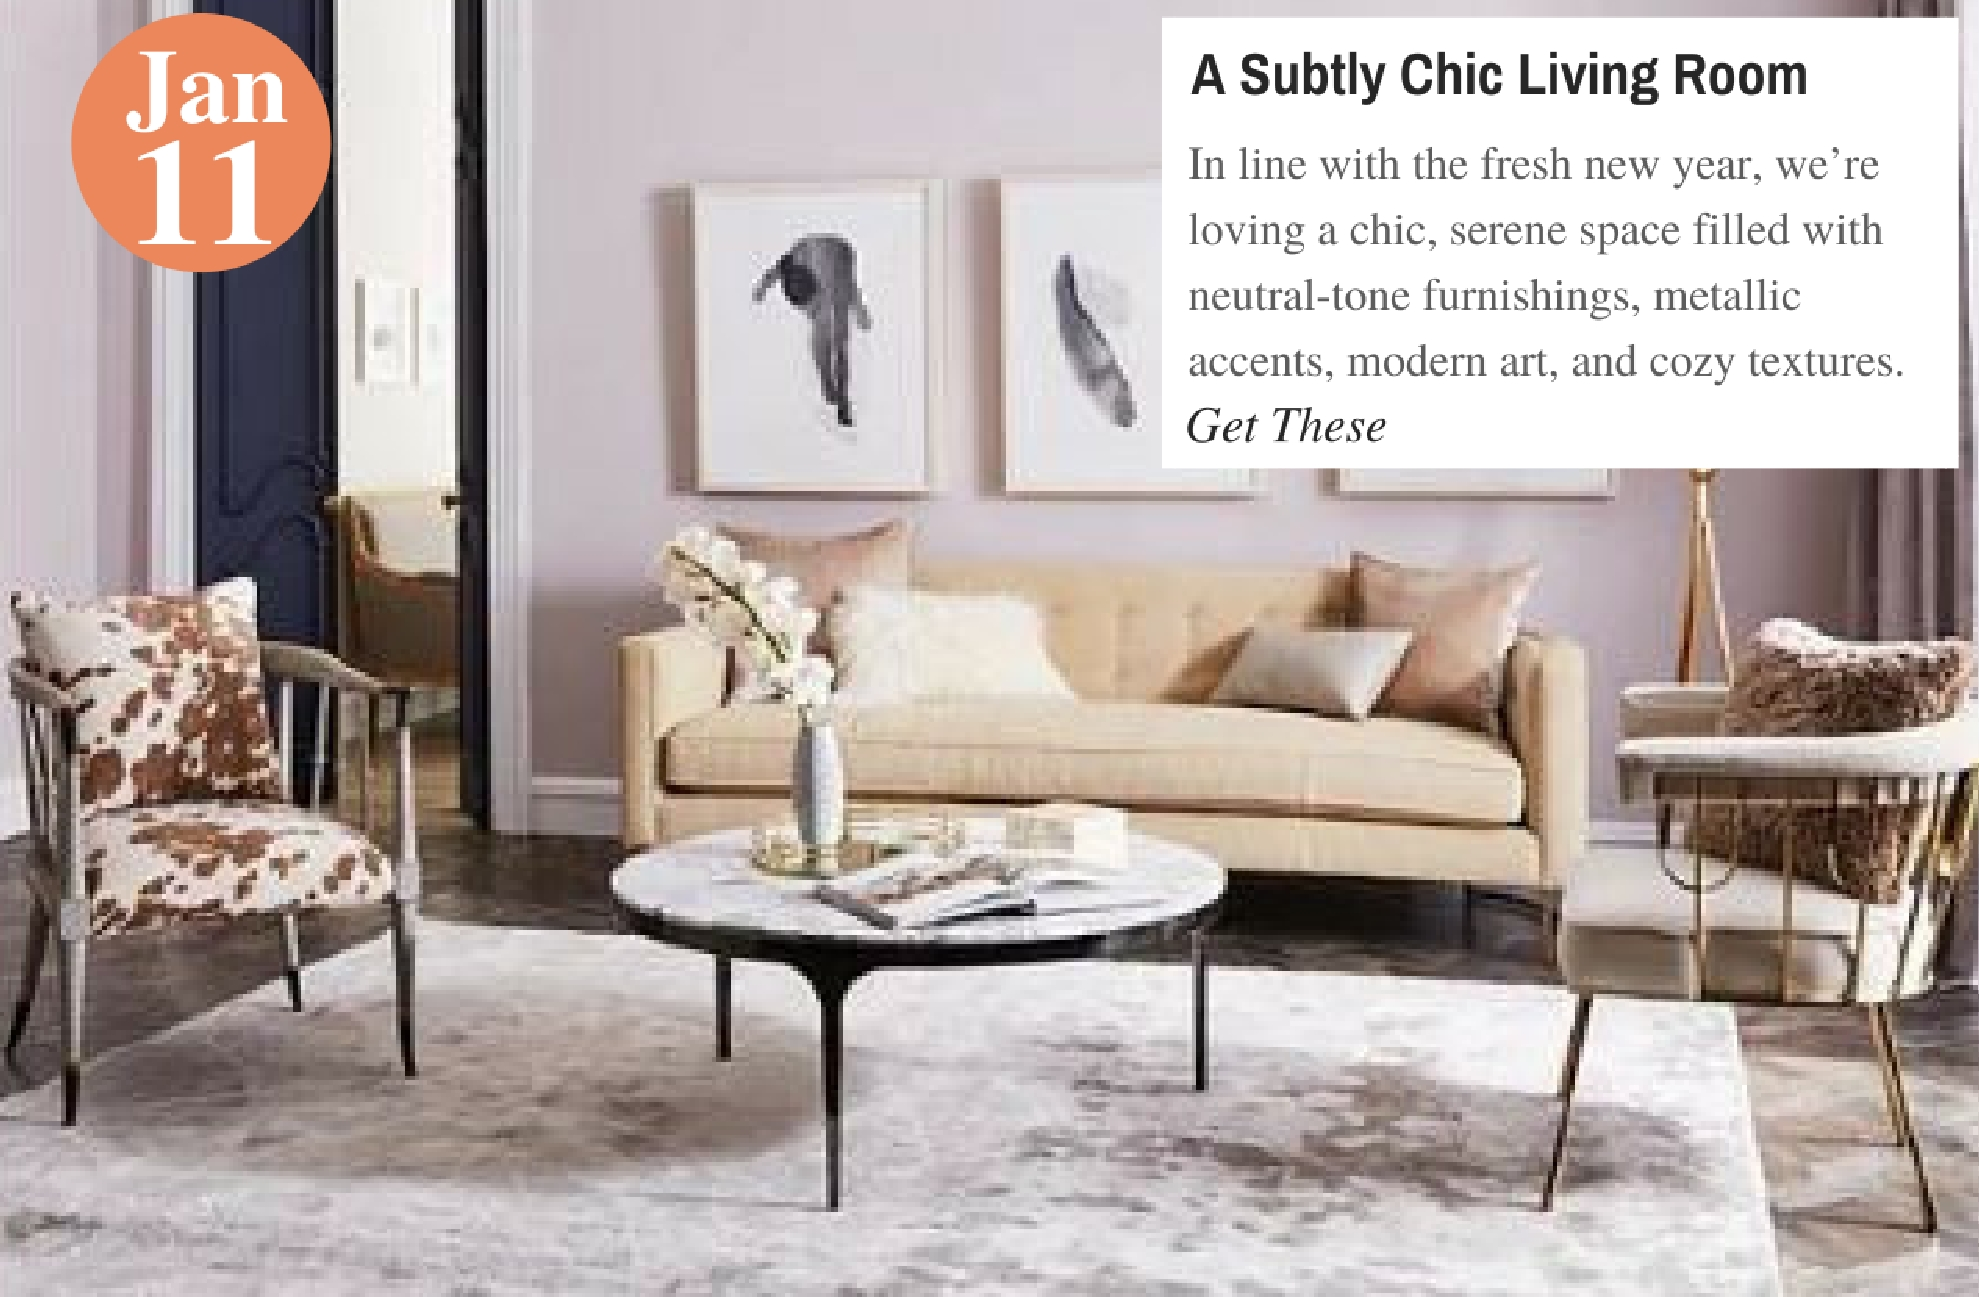 A Subtly Chic Living Room